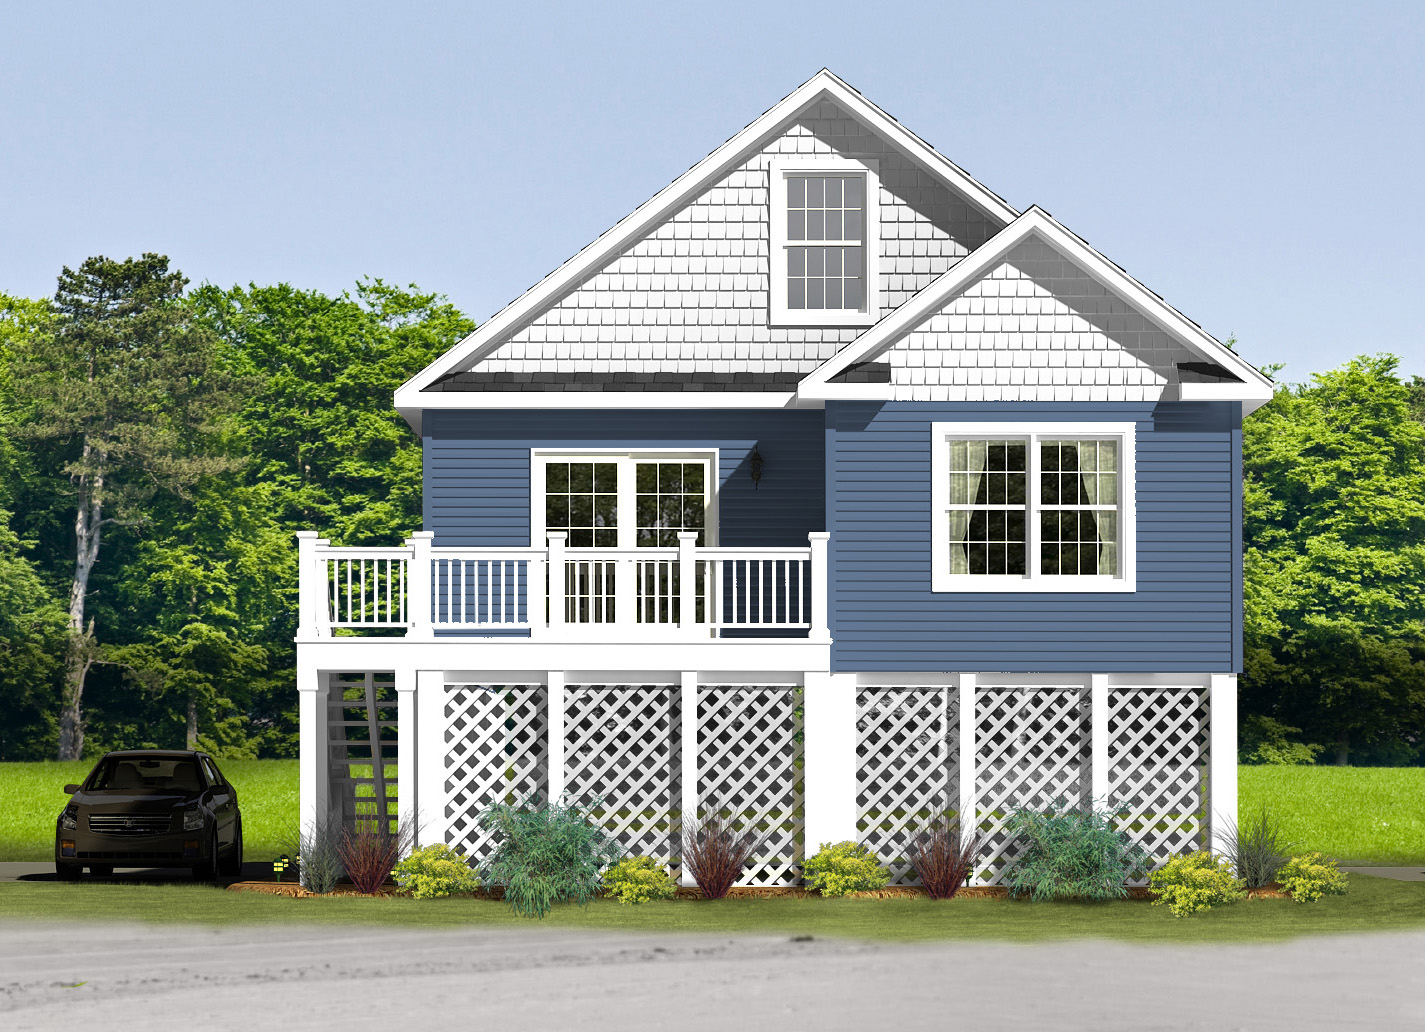 Pennwest homes coastal shore collection modular home floor for Coastal modular home plans